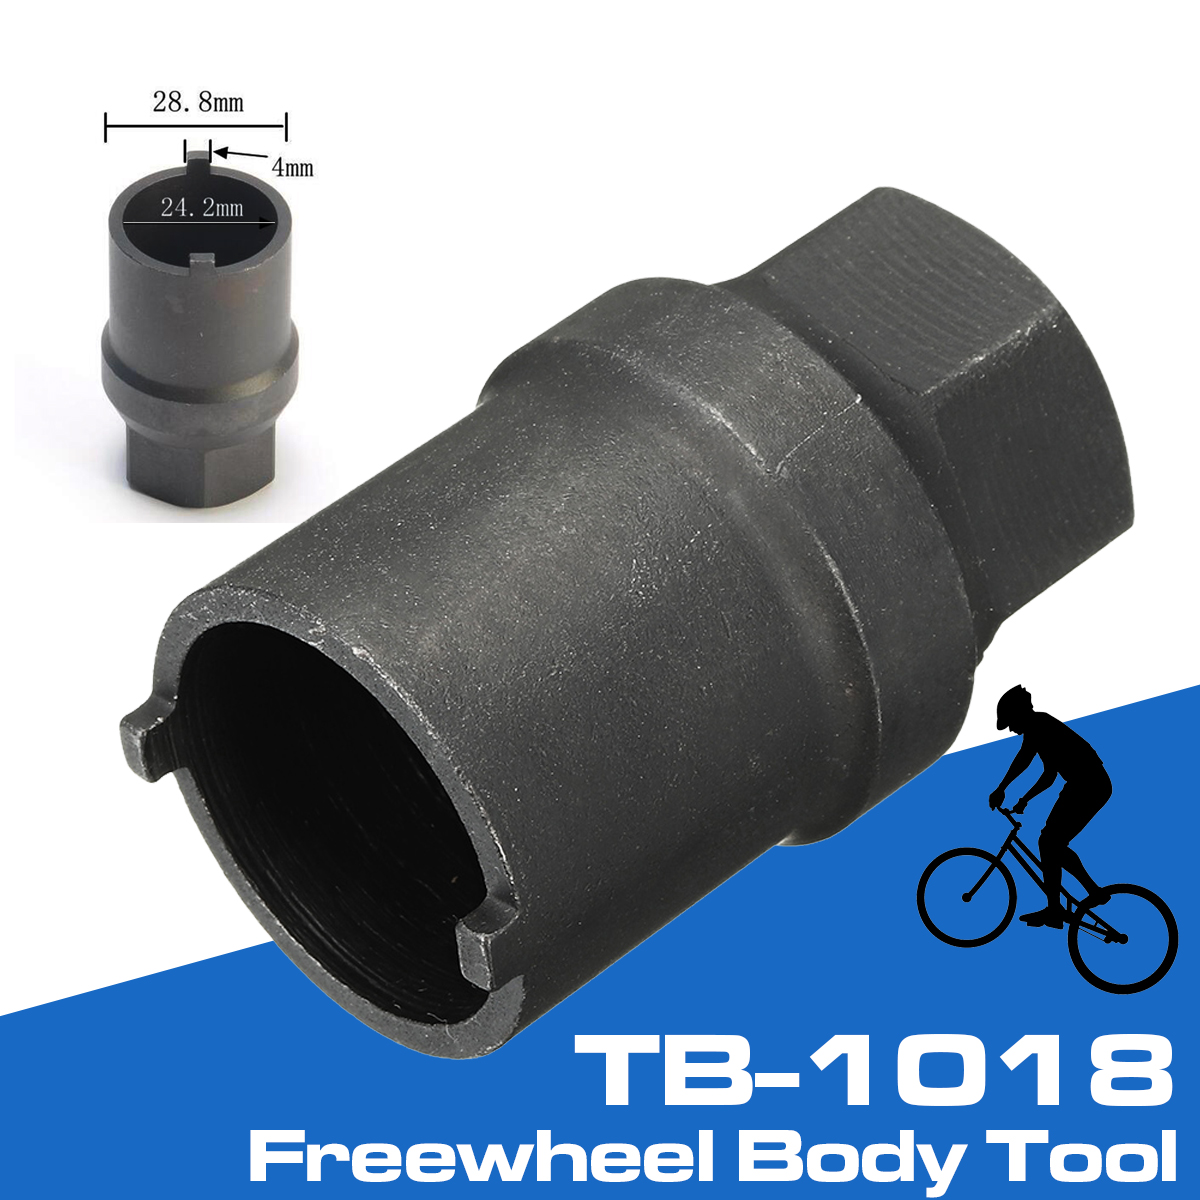 TB-1018 Freewheel Body Hub Cassette Remover Tool Black for Shimano Bicycle